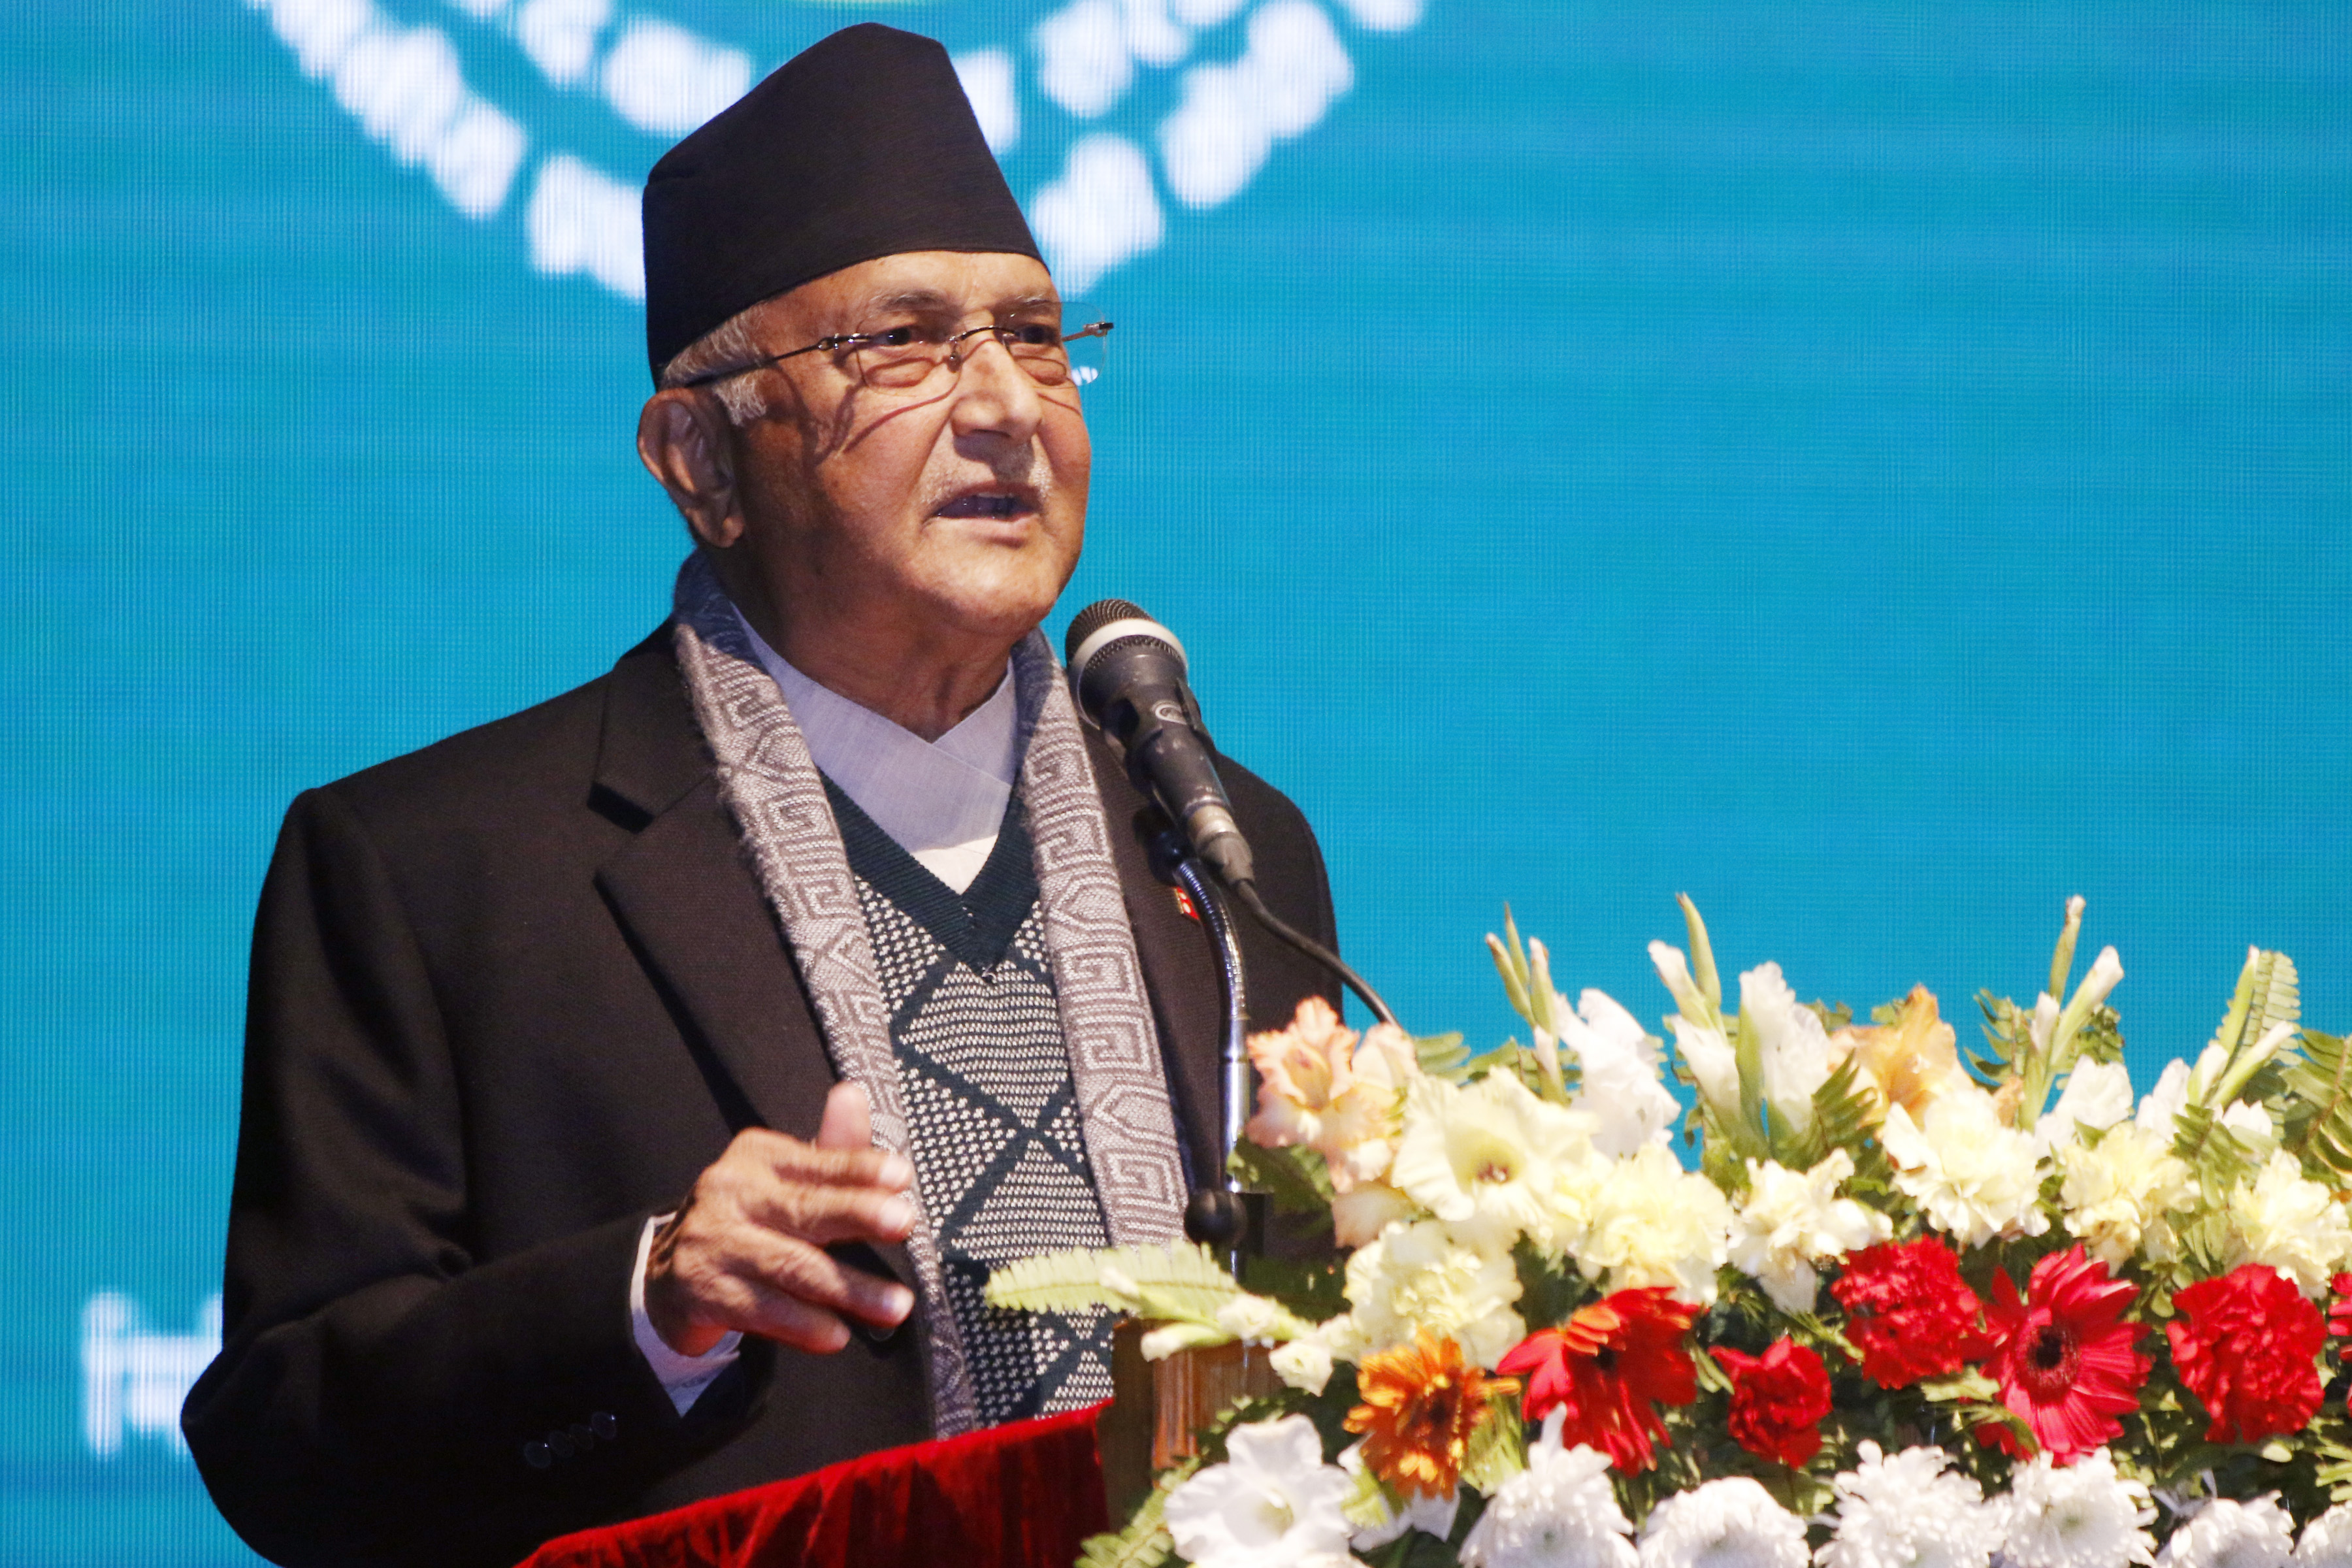 Parliament restoration has taken the country to a fresh round of political instability: PM Oli